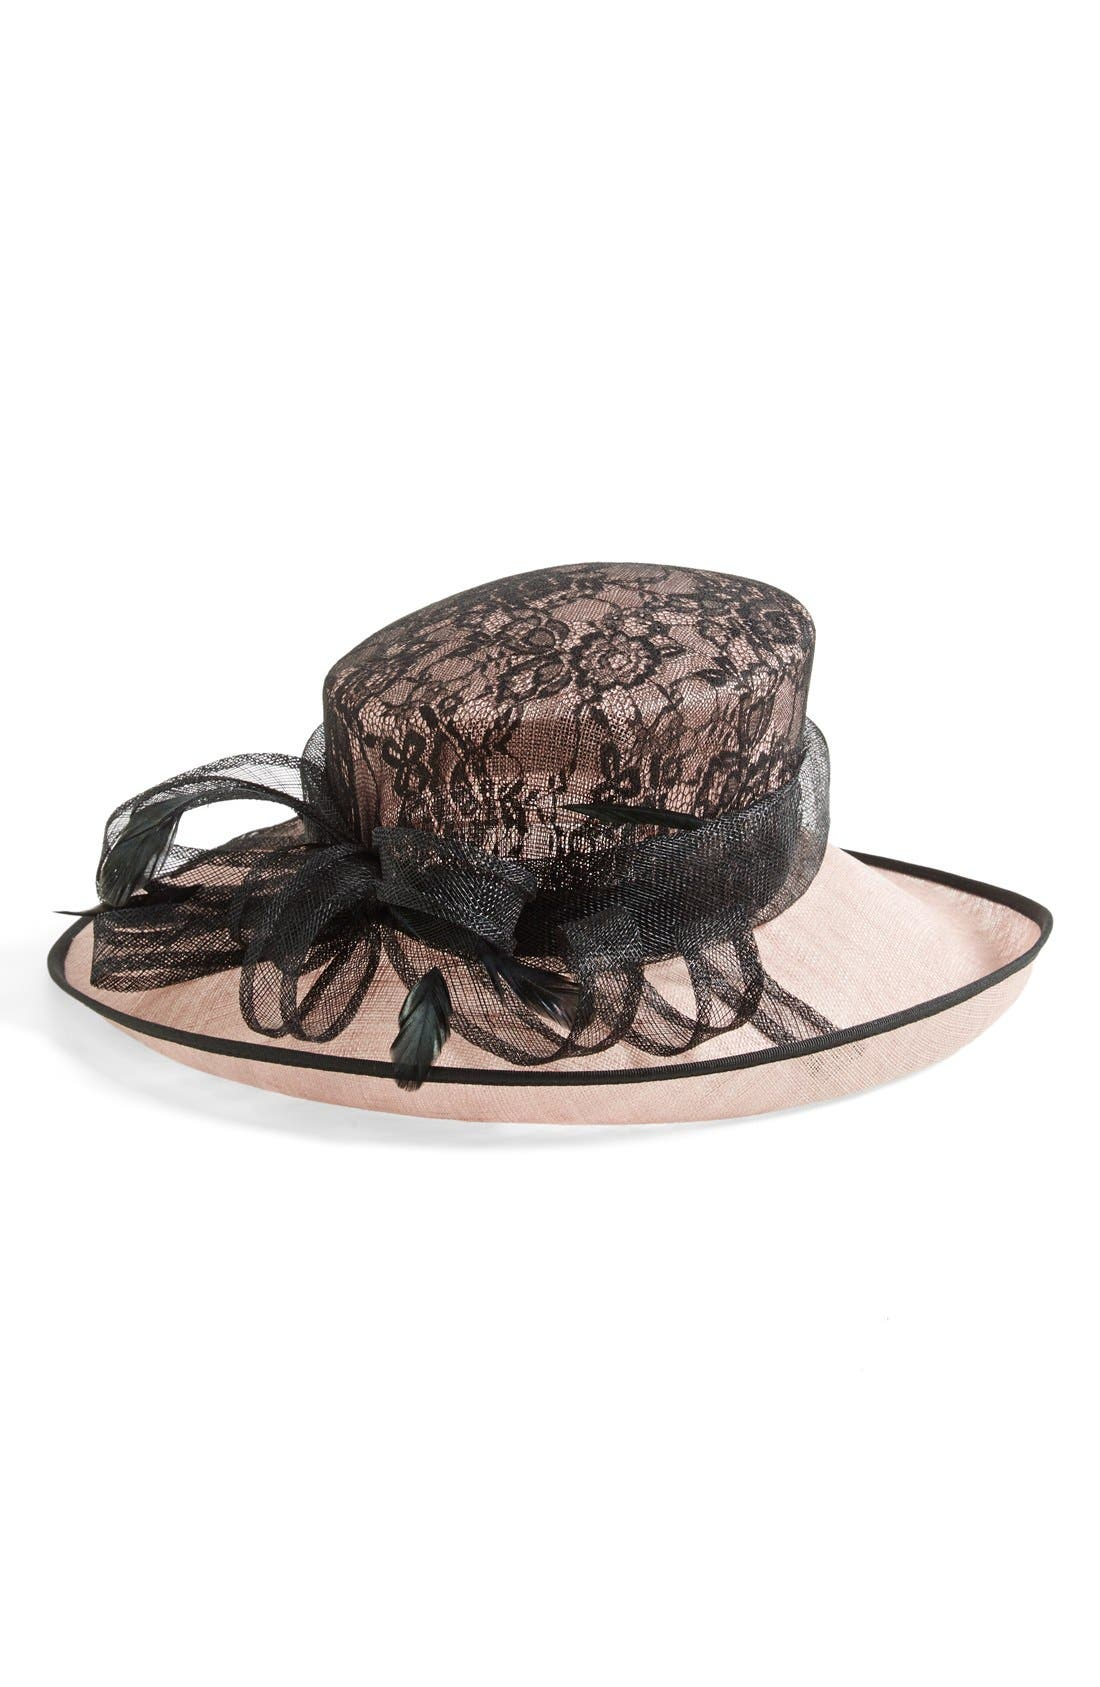 Alternate Image 1 Selected - Nordstrom Sinamay Hat with Lace Cover Crown